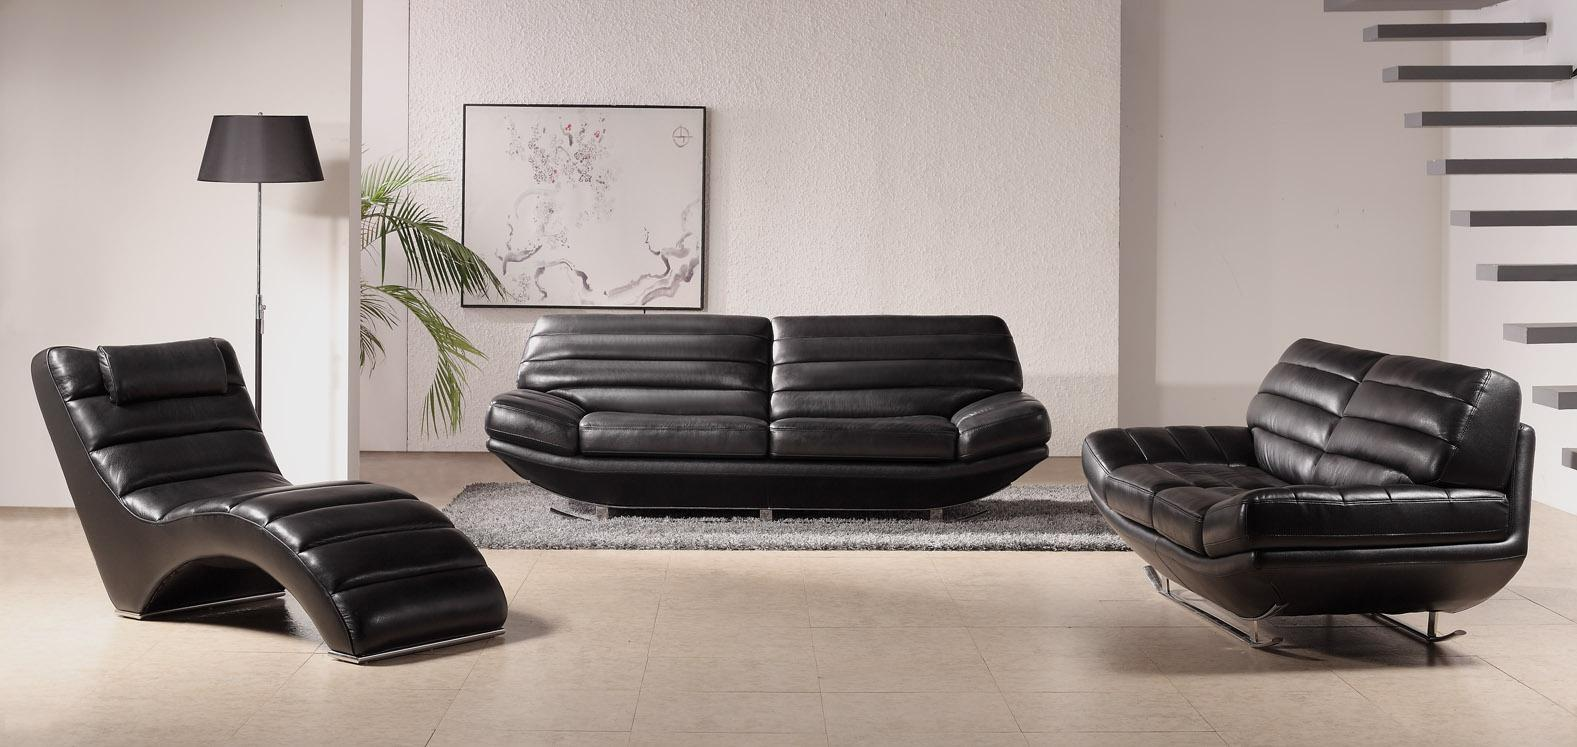 Know about types of couches and sofas my decorative for Home decor sofa designs